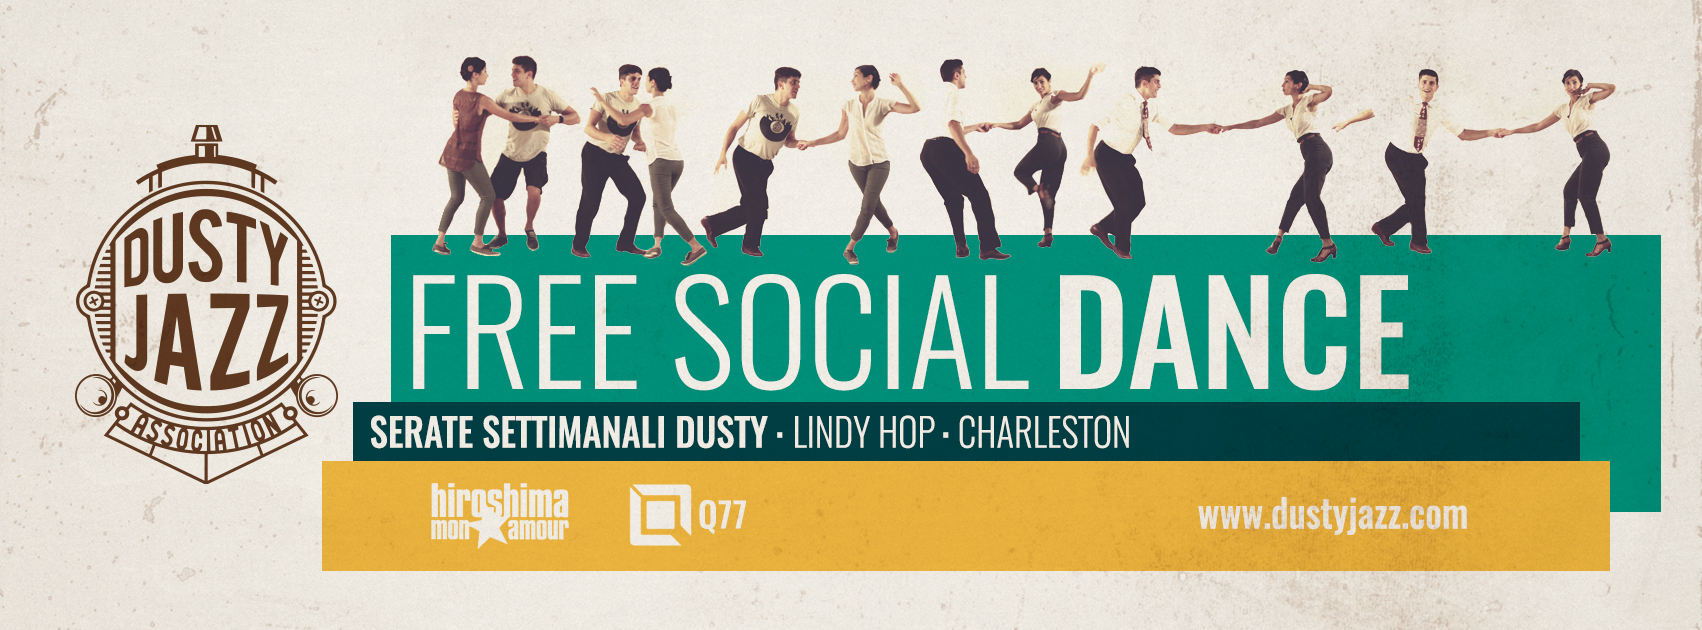 copertina-free-social-dance-dusty-jazz